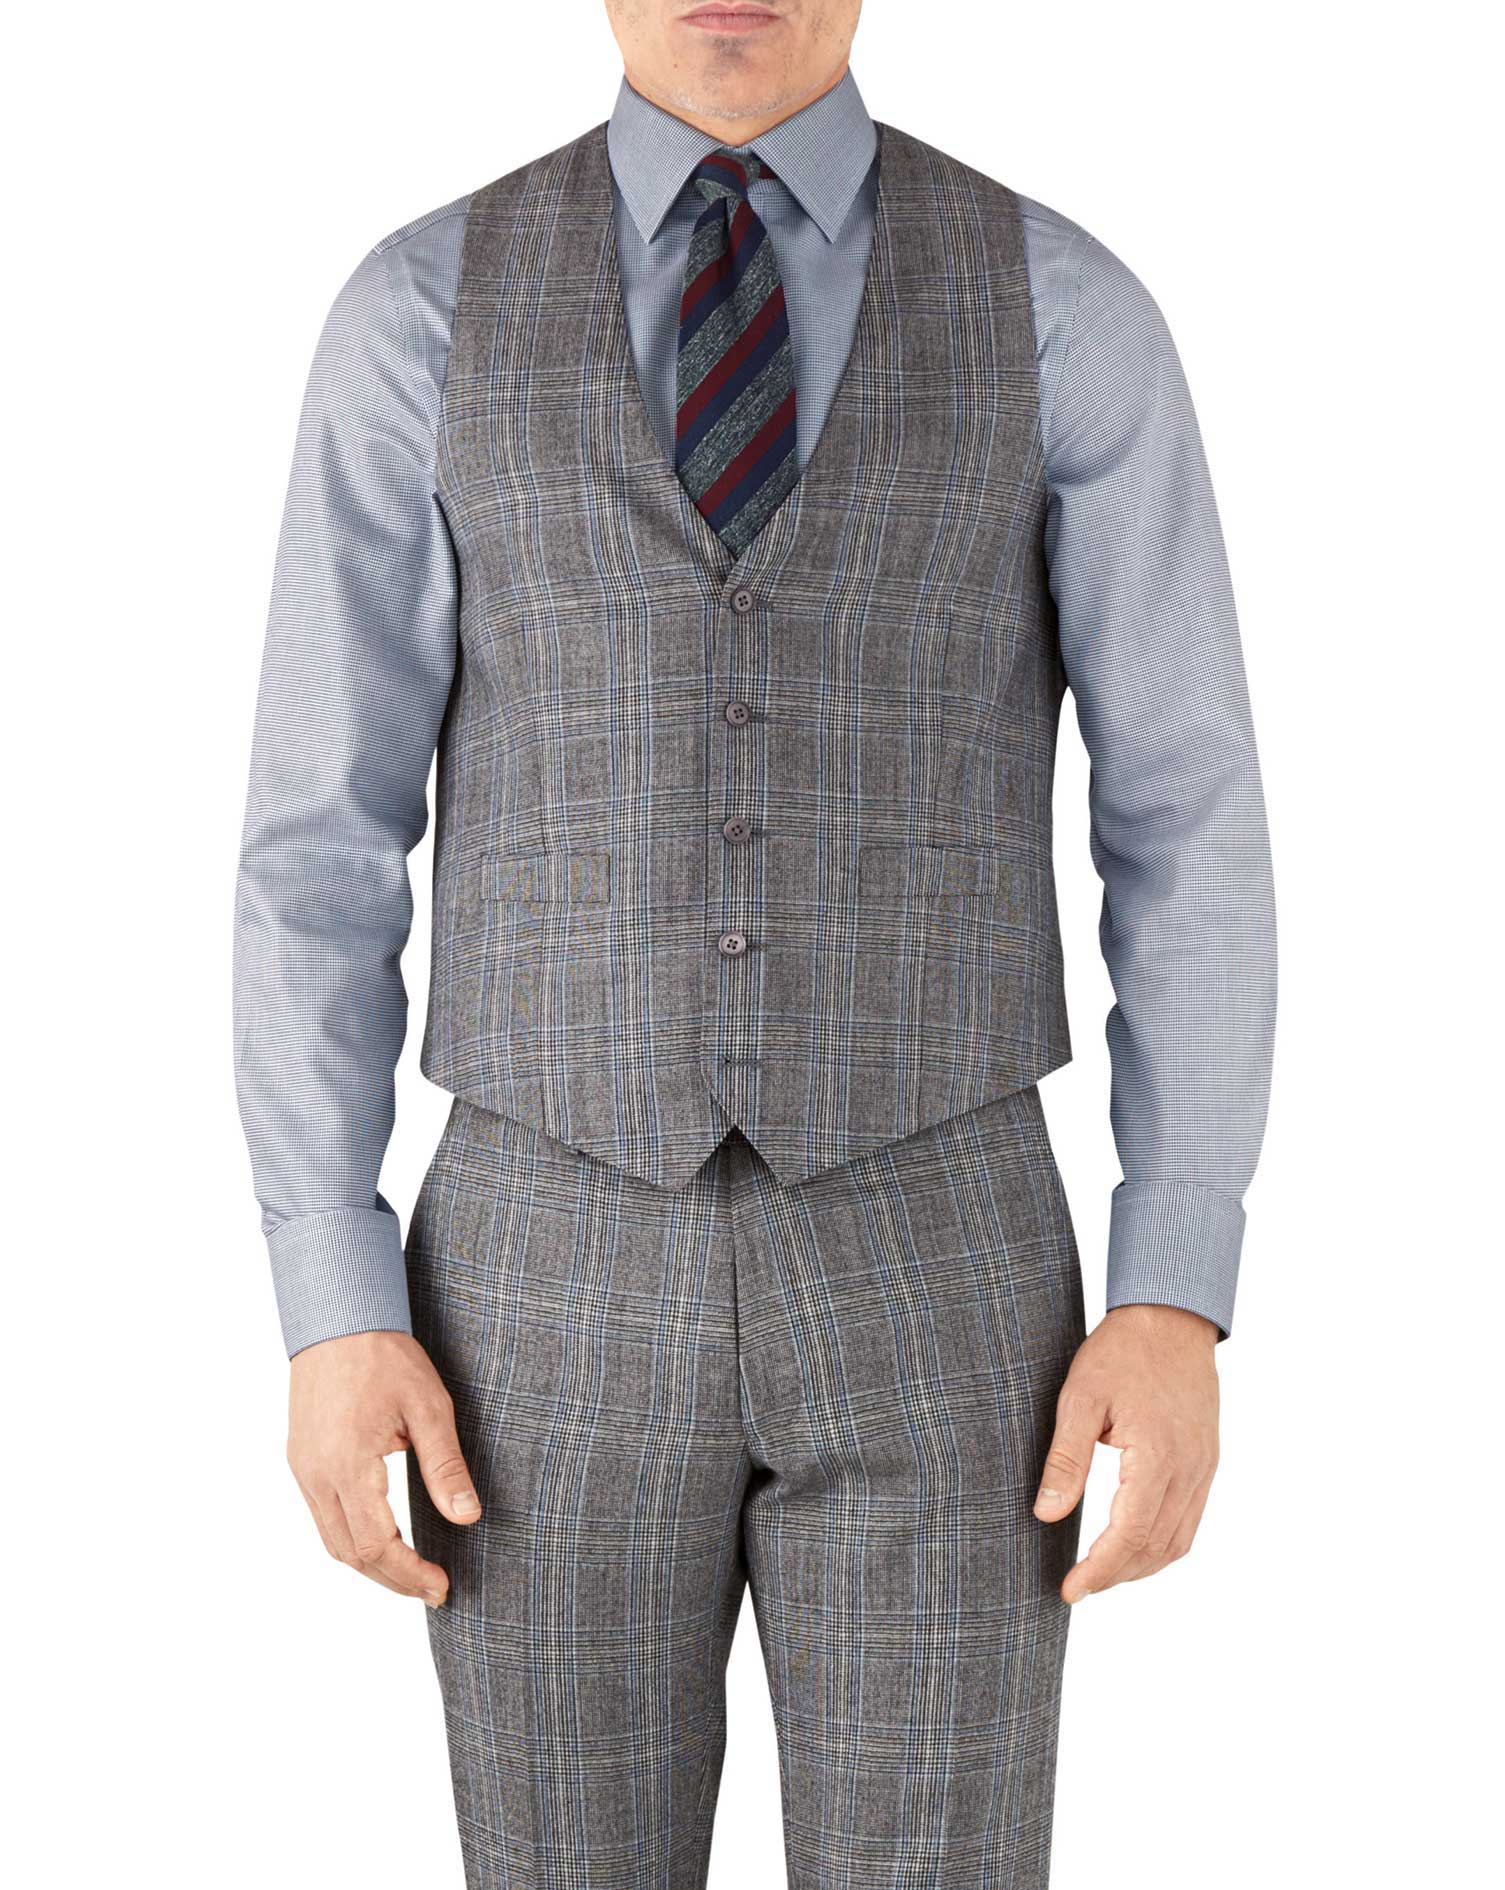 Silver Prince of Wales adjustable fit flannel business suit vest